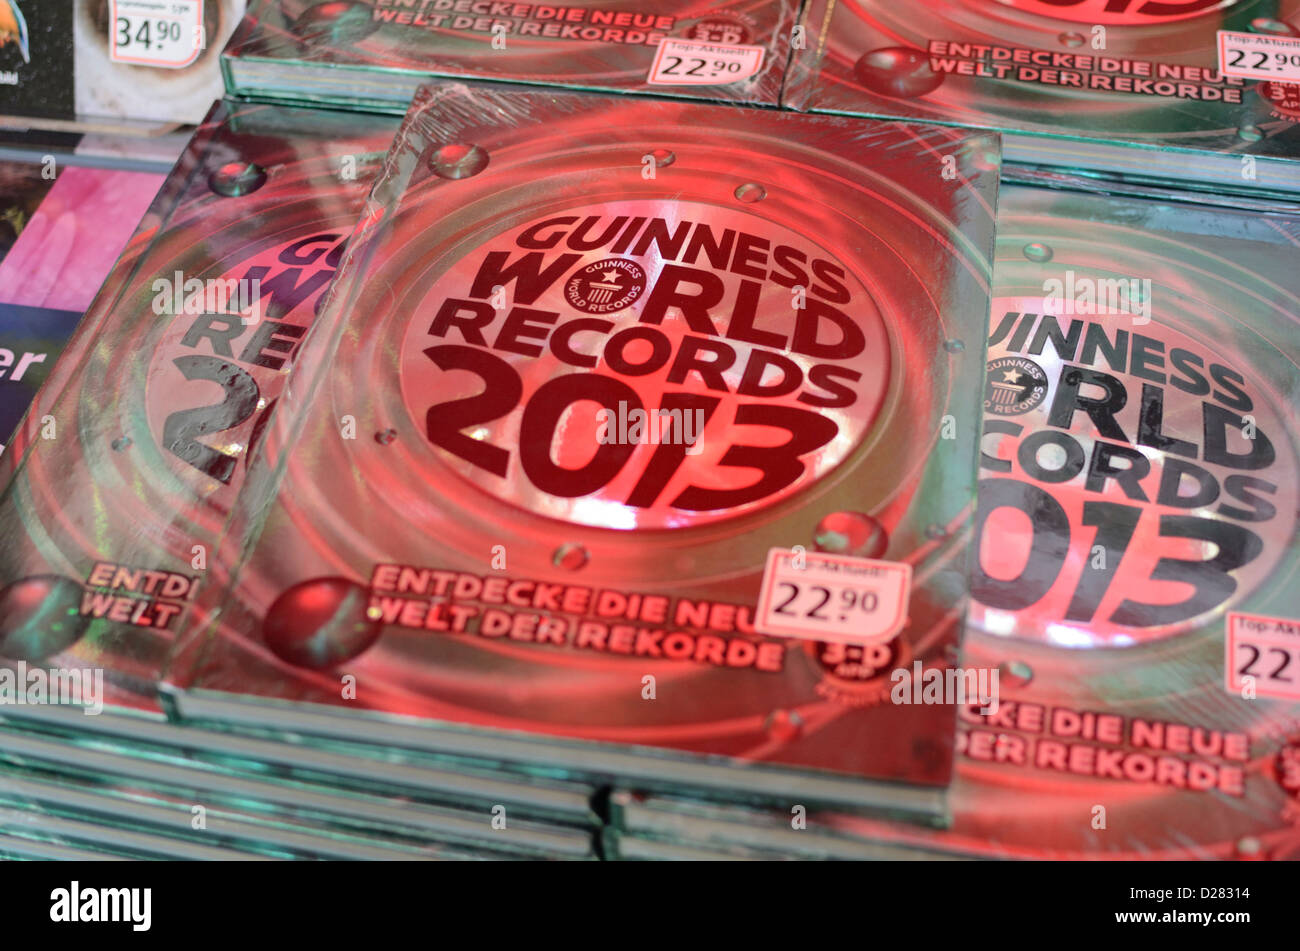 Copies of Guinness World Records (Swiss edition) on a stall - Stock Image